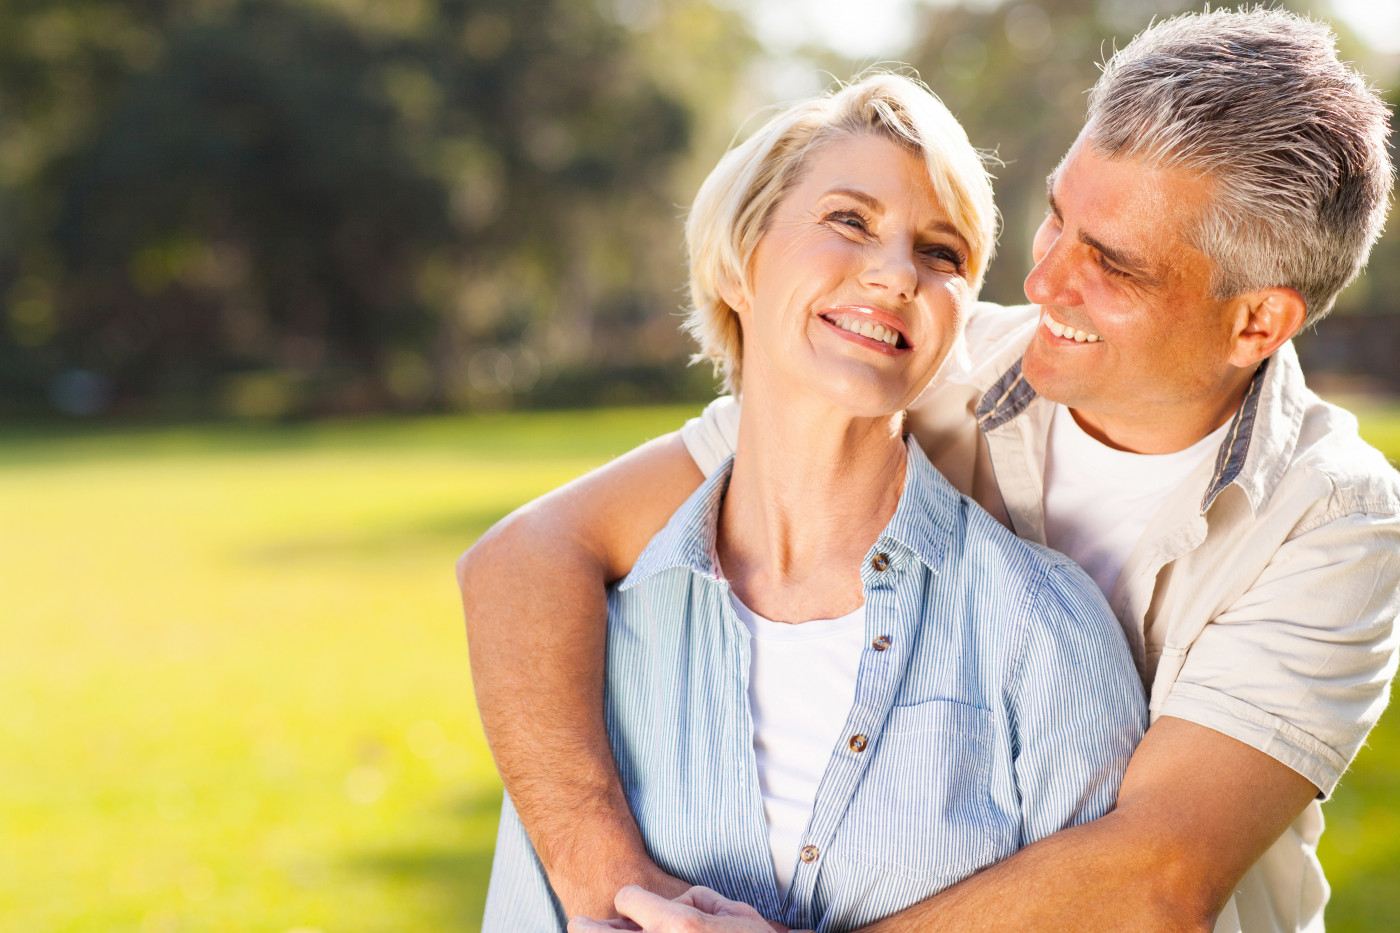 spouses, interview-based study